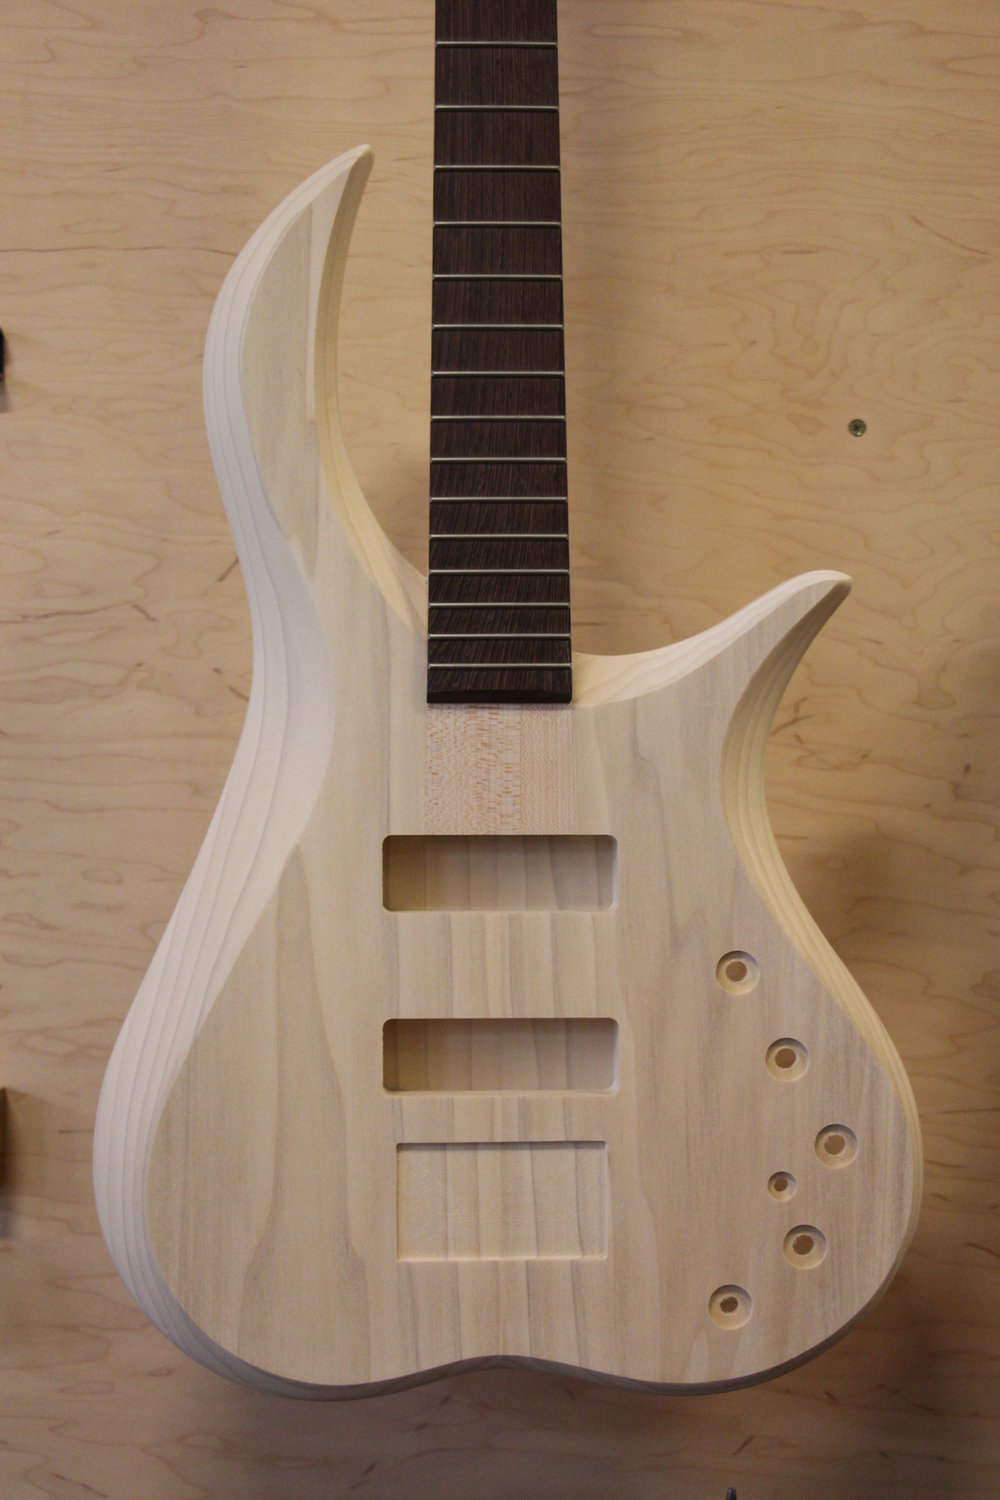 #028 Poplar Caracal 4 with 3 piece maple neck and wenge fretboard. Finish color yet to be determined.